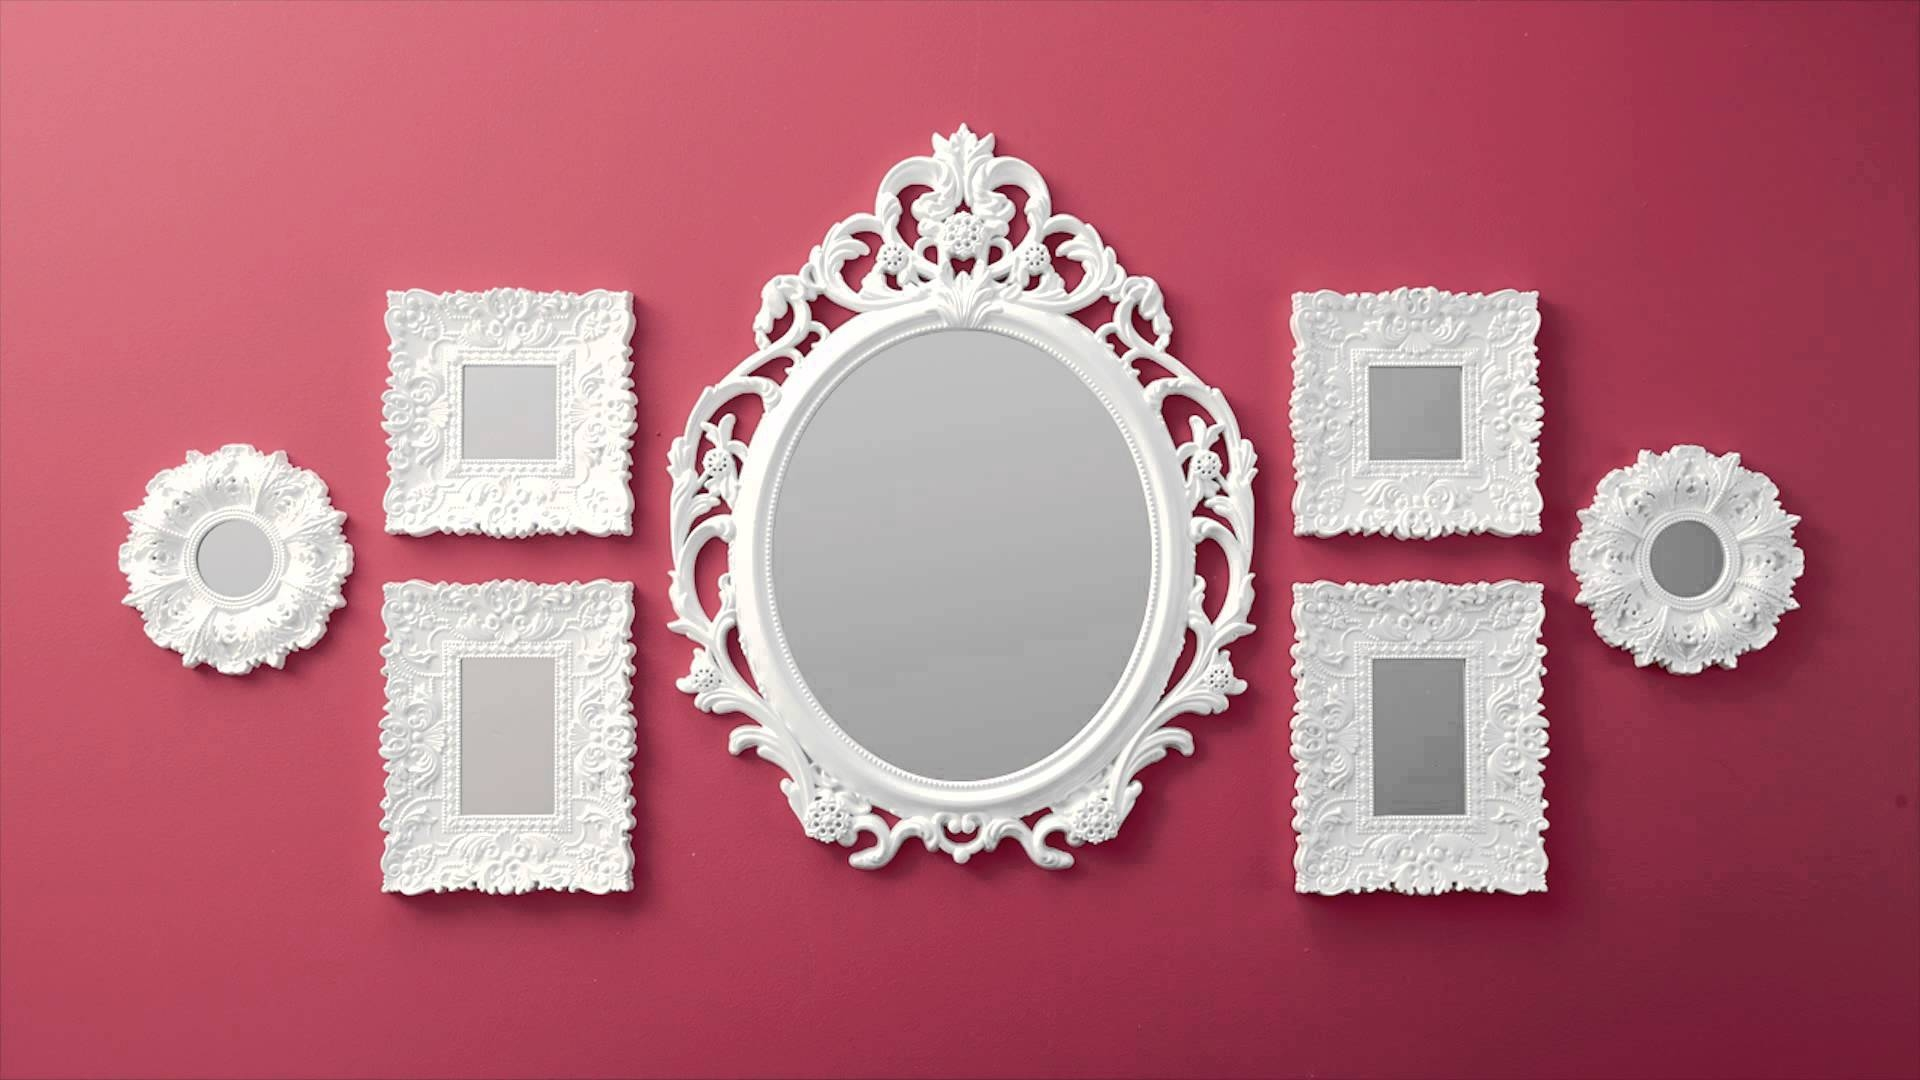 Dancing Mirrors From Better Homes And Gardens At Walmart! – Youtube Throughout Baroque White Mirrors (View 13 of 25)